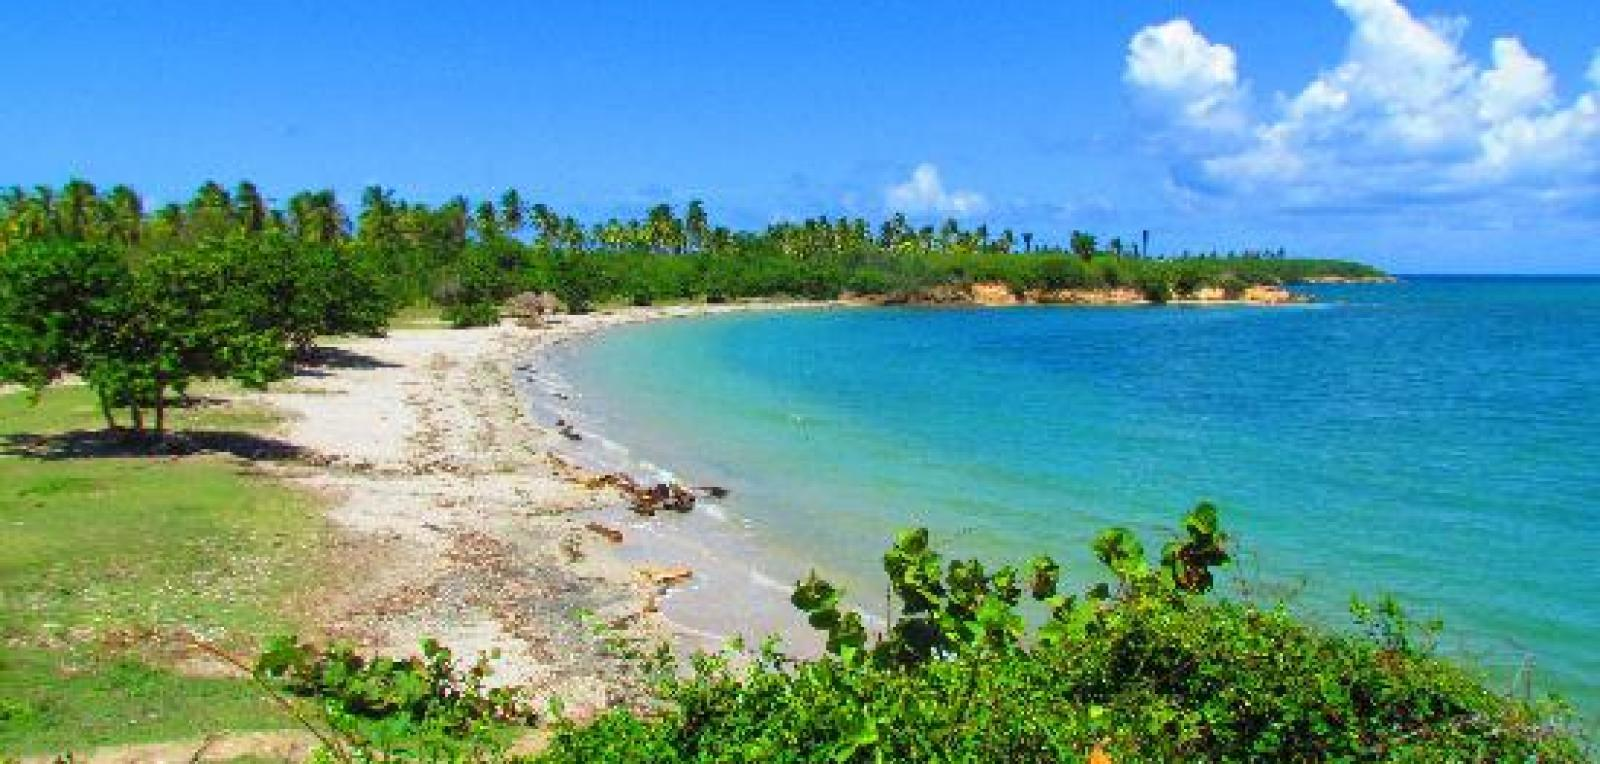 Colón's Bariay: beauty and history in eastern Cuba